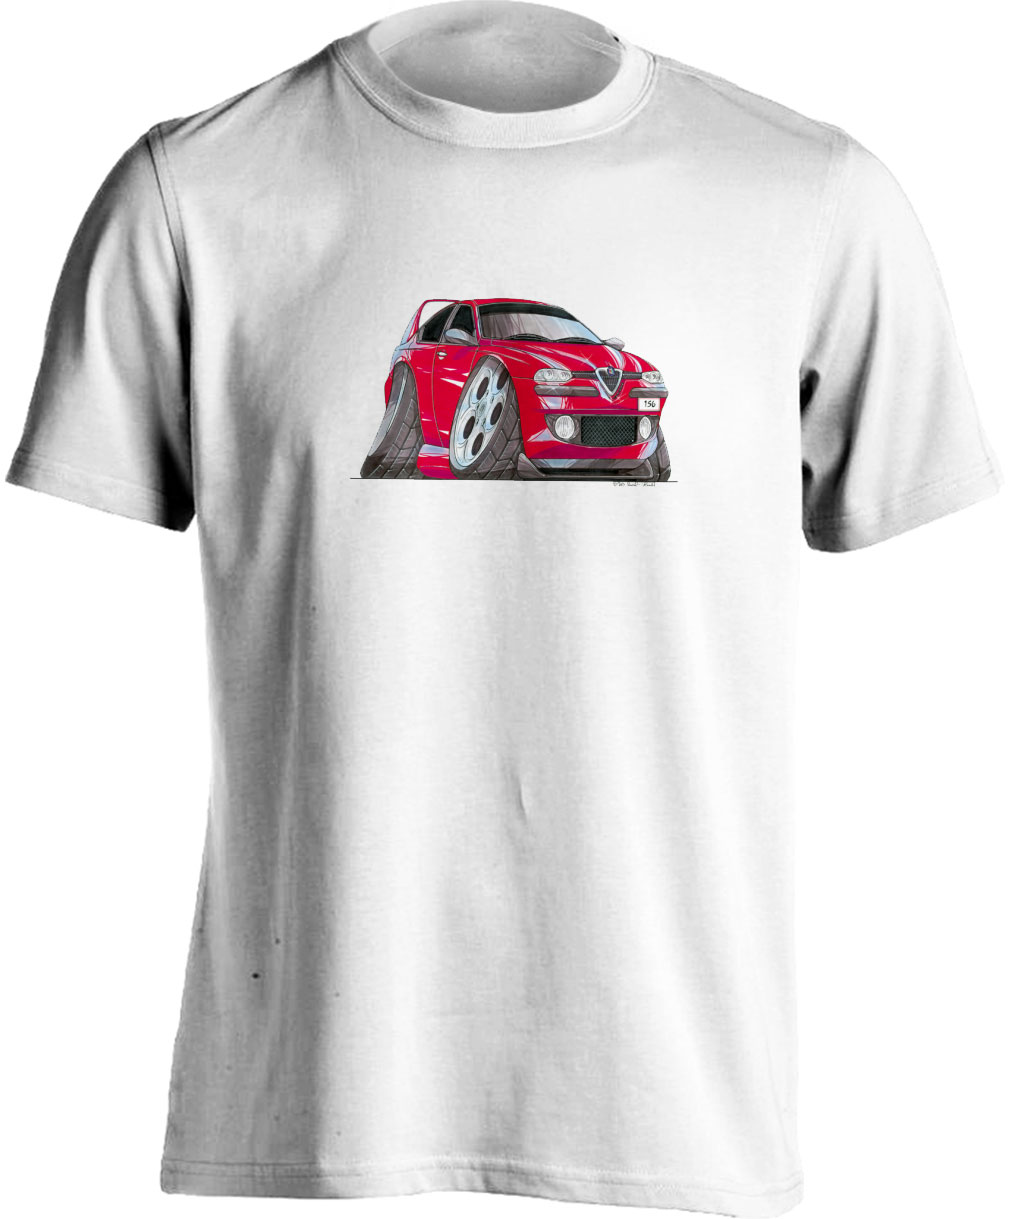 Koolart 156-1421 Red Alfa Romeo Child's T Shirt